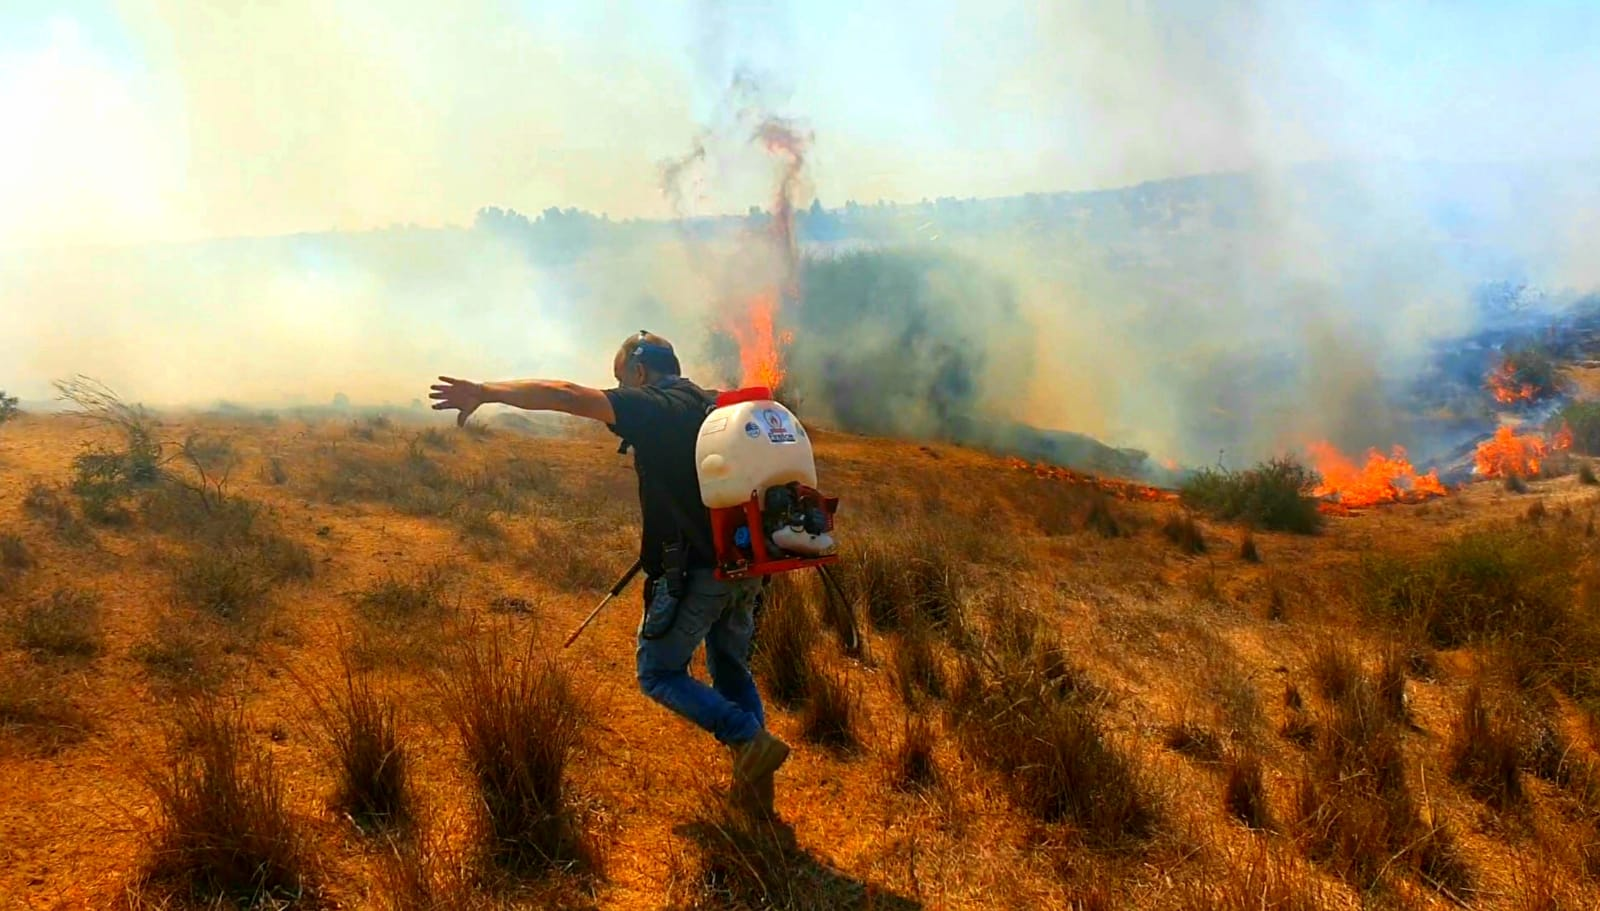 Fighting fires in the Eshkol region